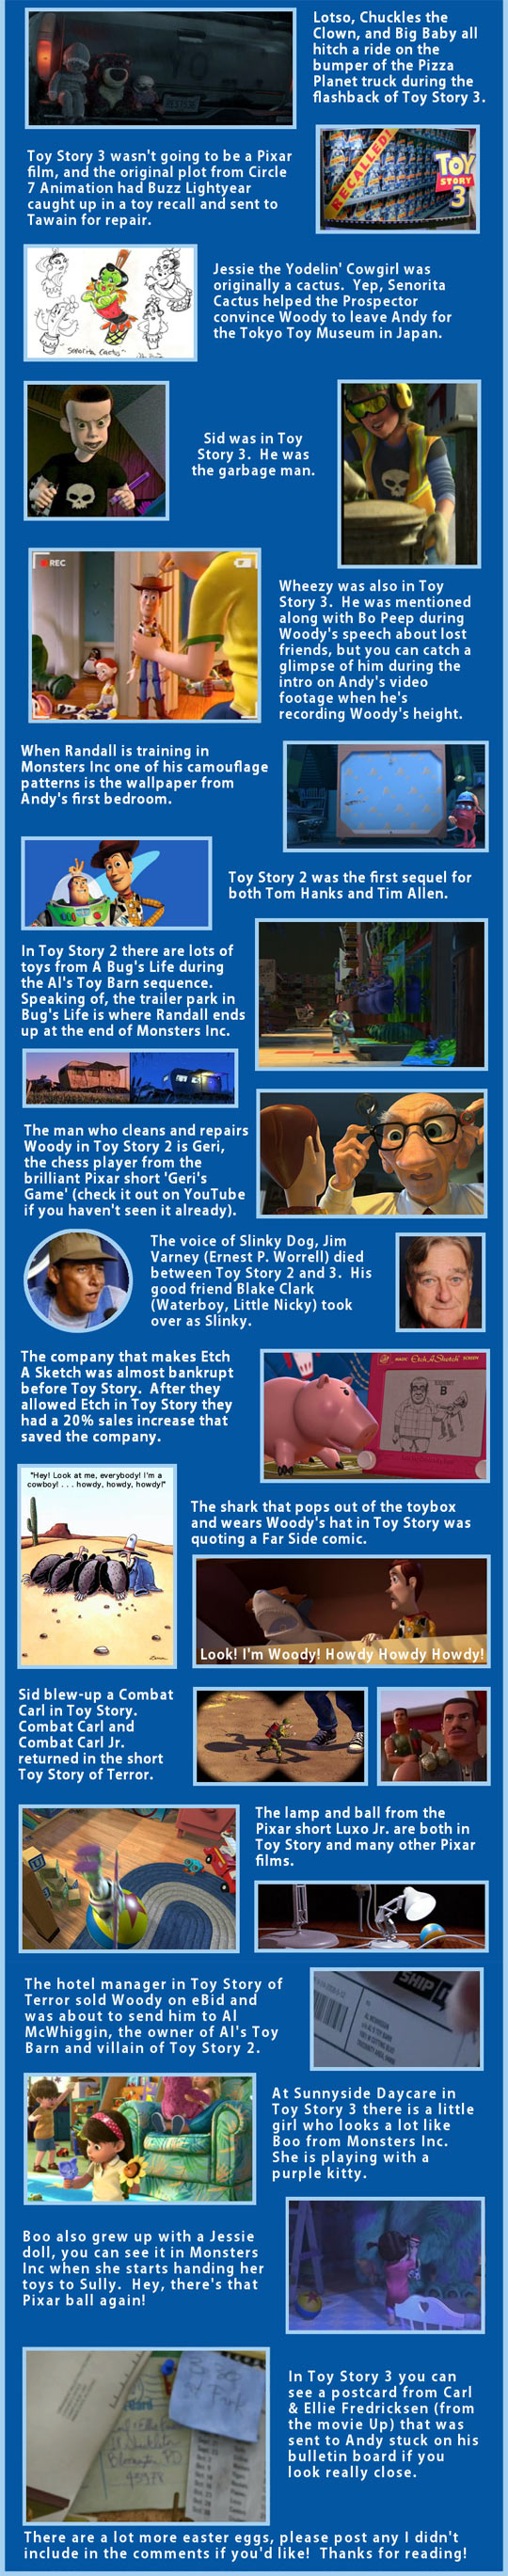 cool-facts-Toy-Story-Woody-Monsters-Bugs-Life